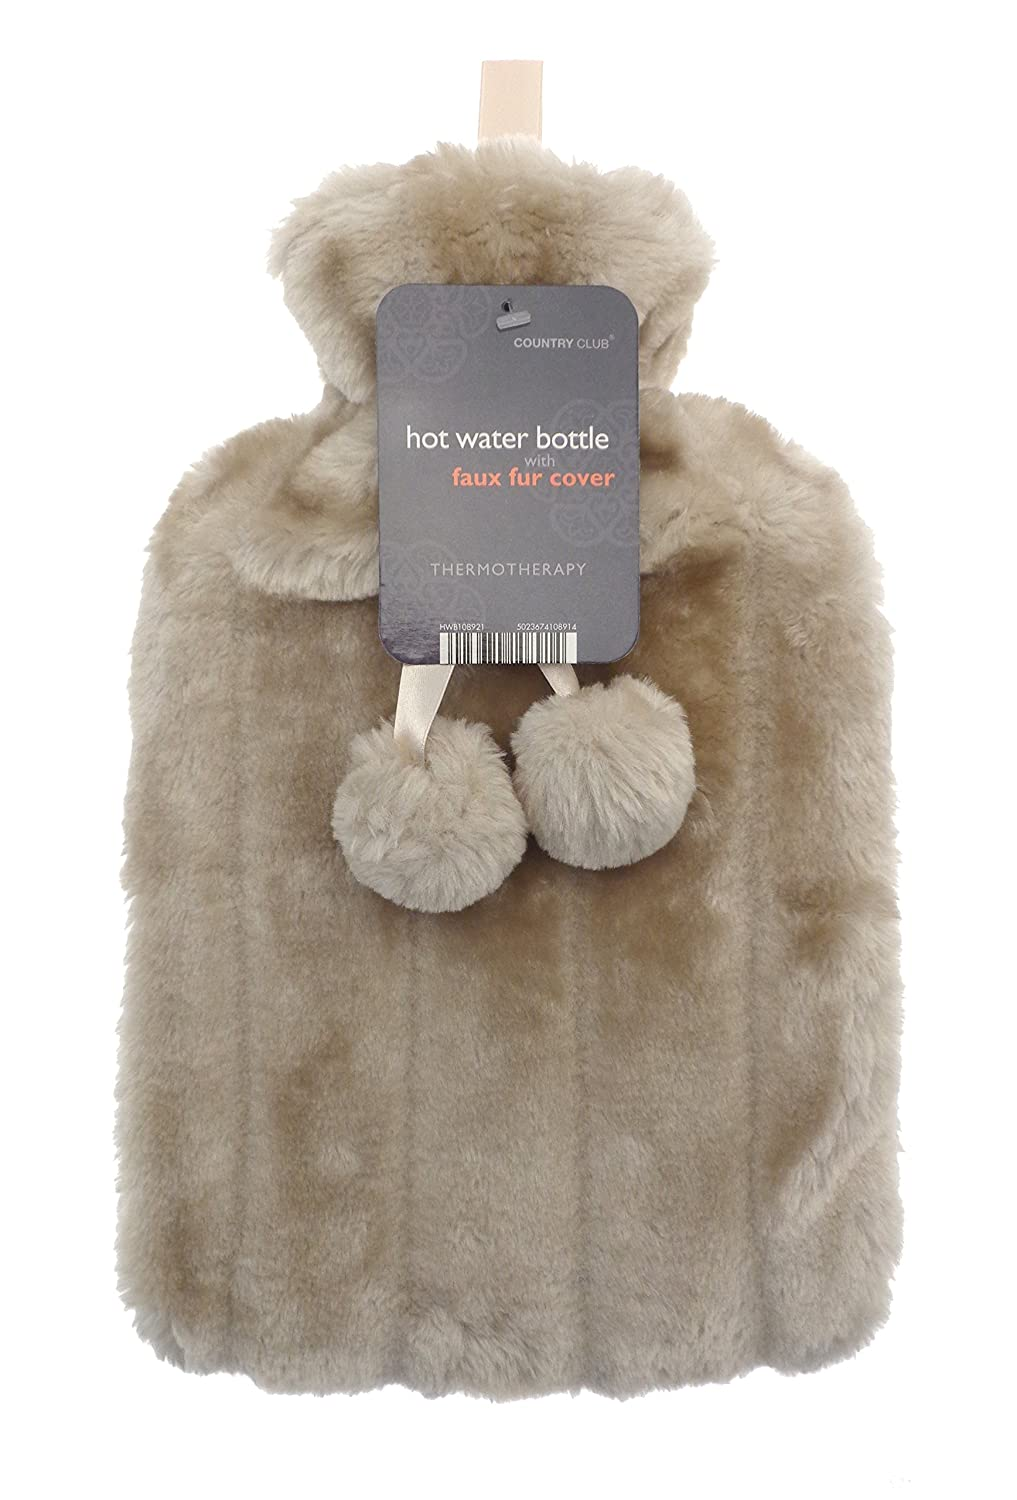 Luxurious Cosy Faux Fur Cover Hot Water Bottles with Pom Poms: 2 Litre Size (Mink) Country Club